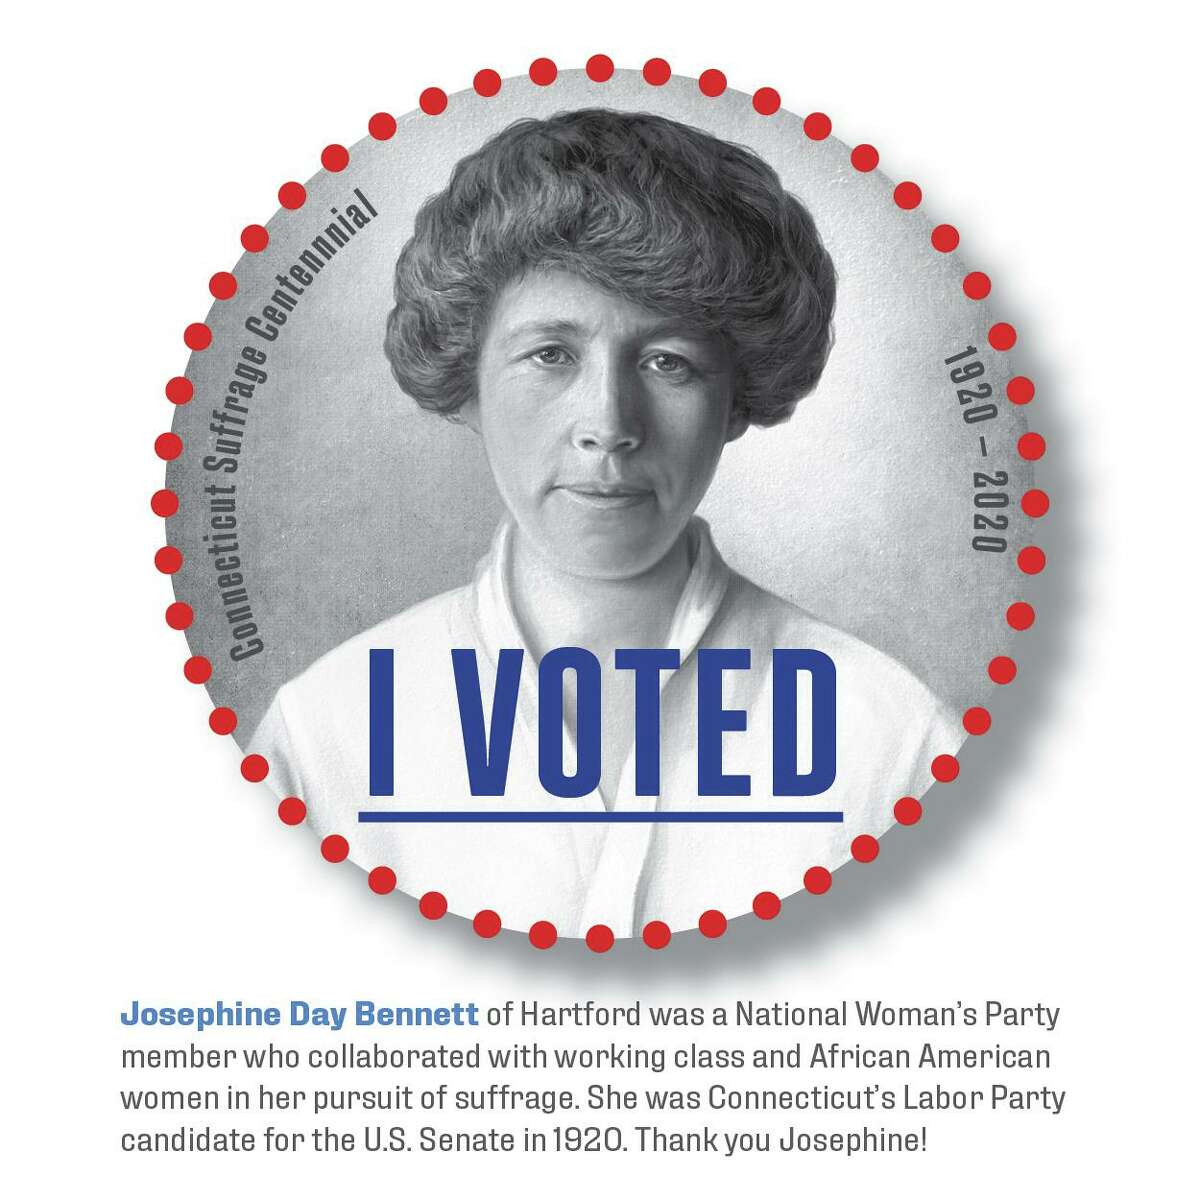 Josephine Day Bennett was a white woman who fought for suffrage for all women.